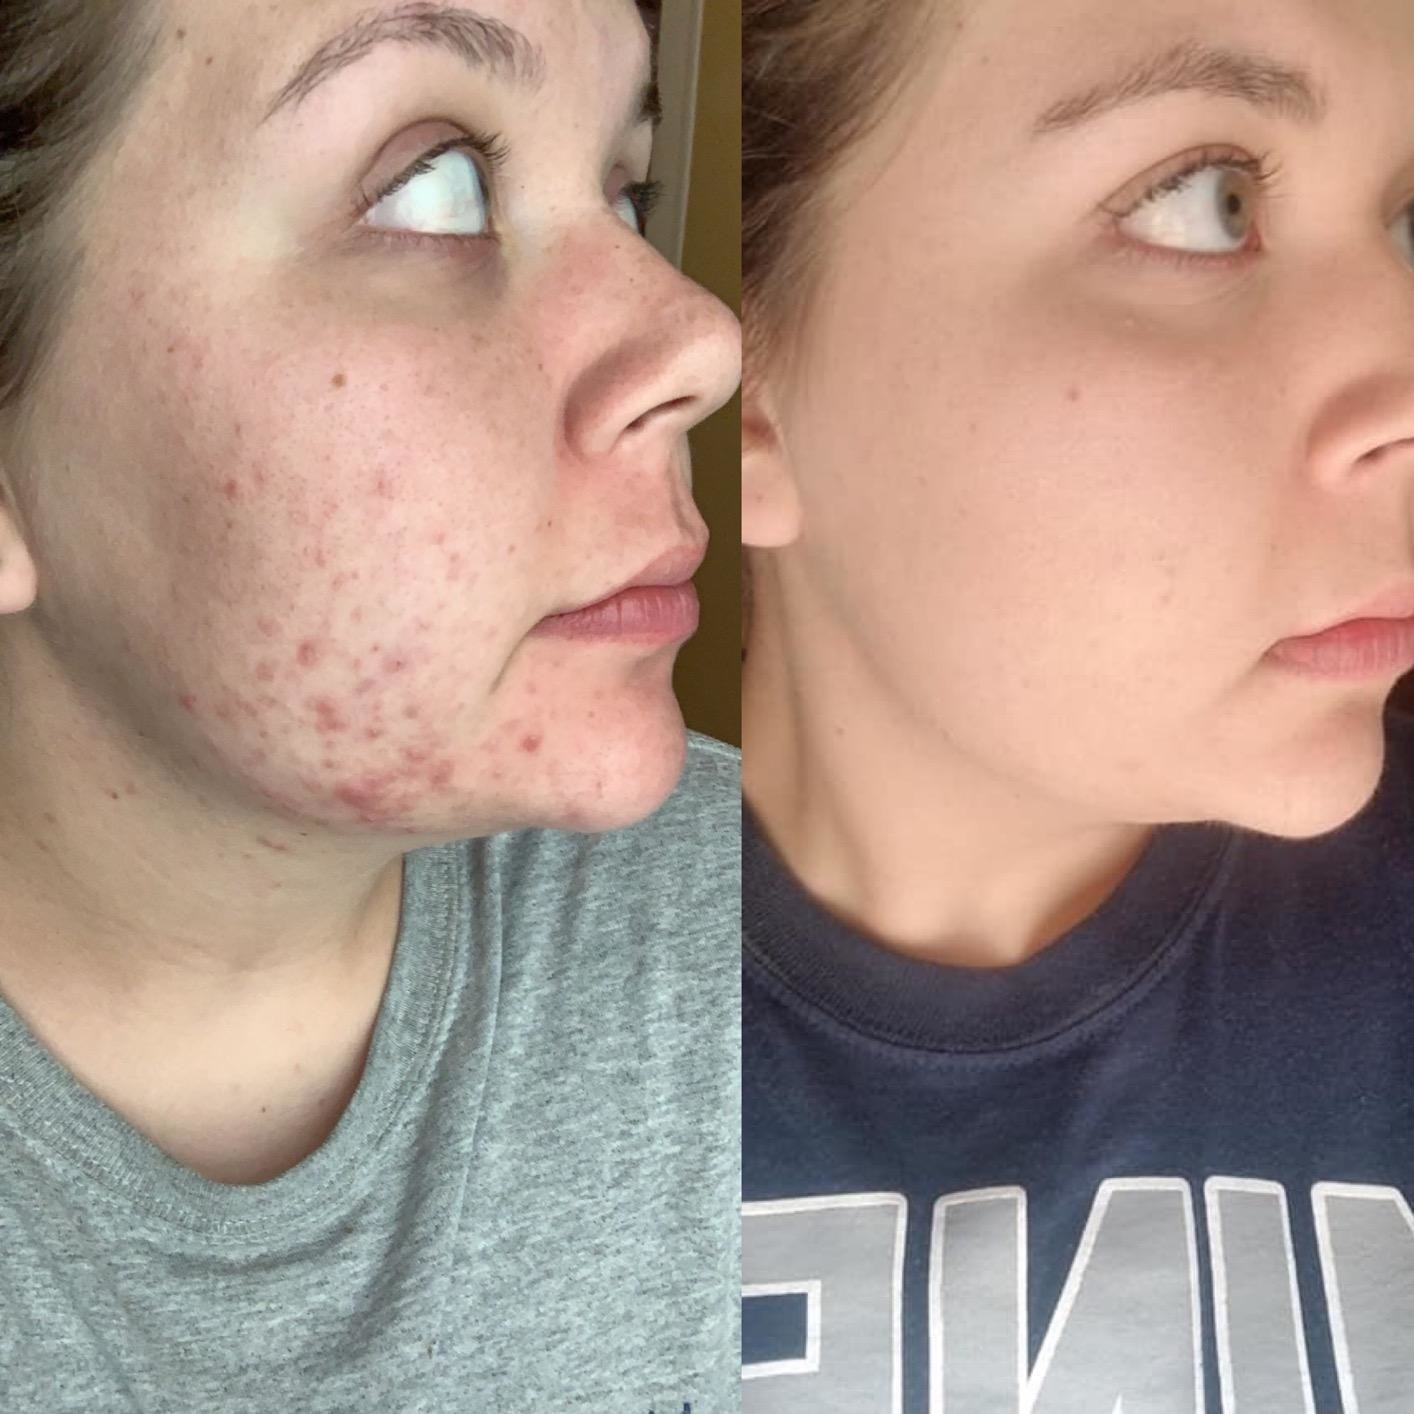 Reviewer before and after showing the cleanser helped clear up all the red acne and acne scars on their cheek